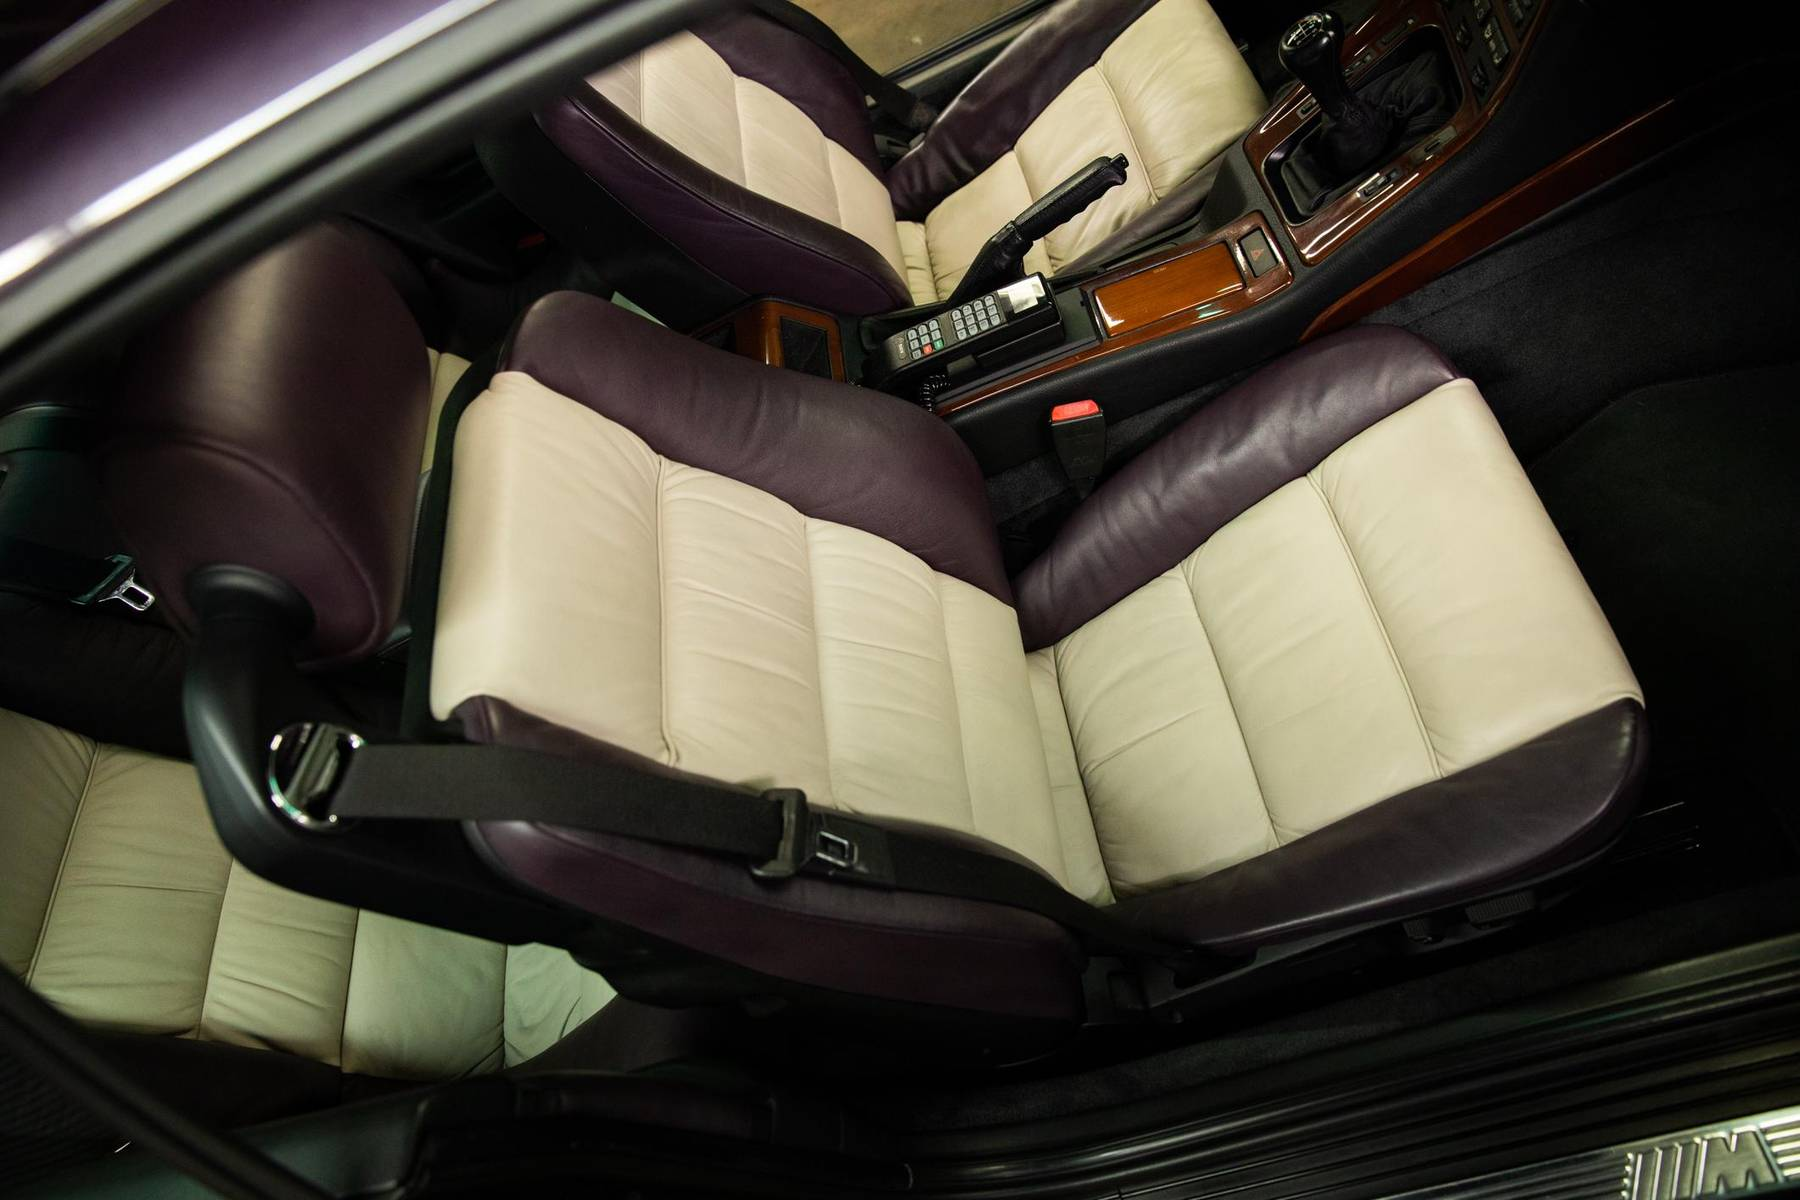 1995 BMW 850CSi seats